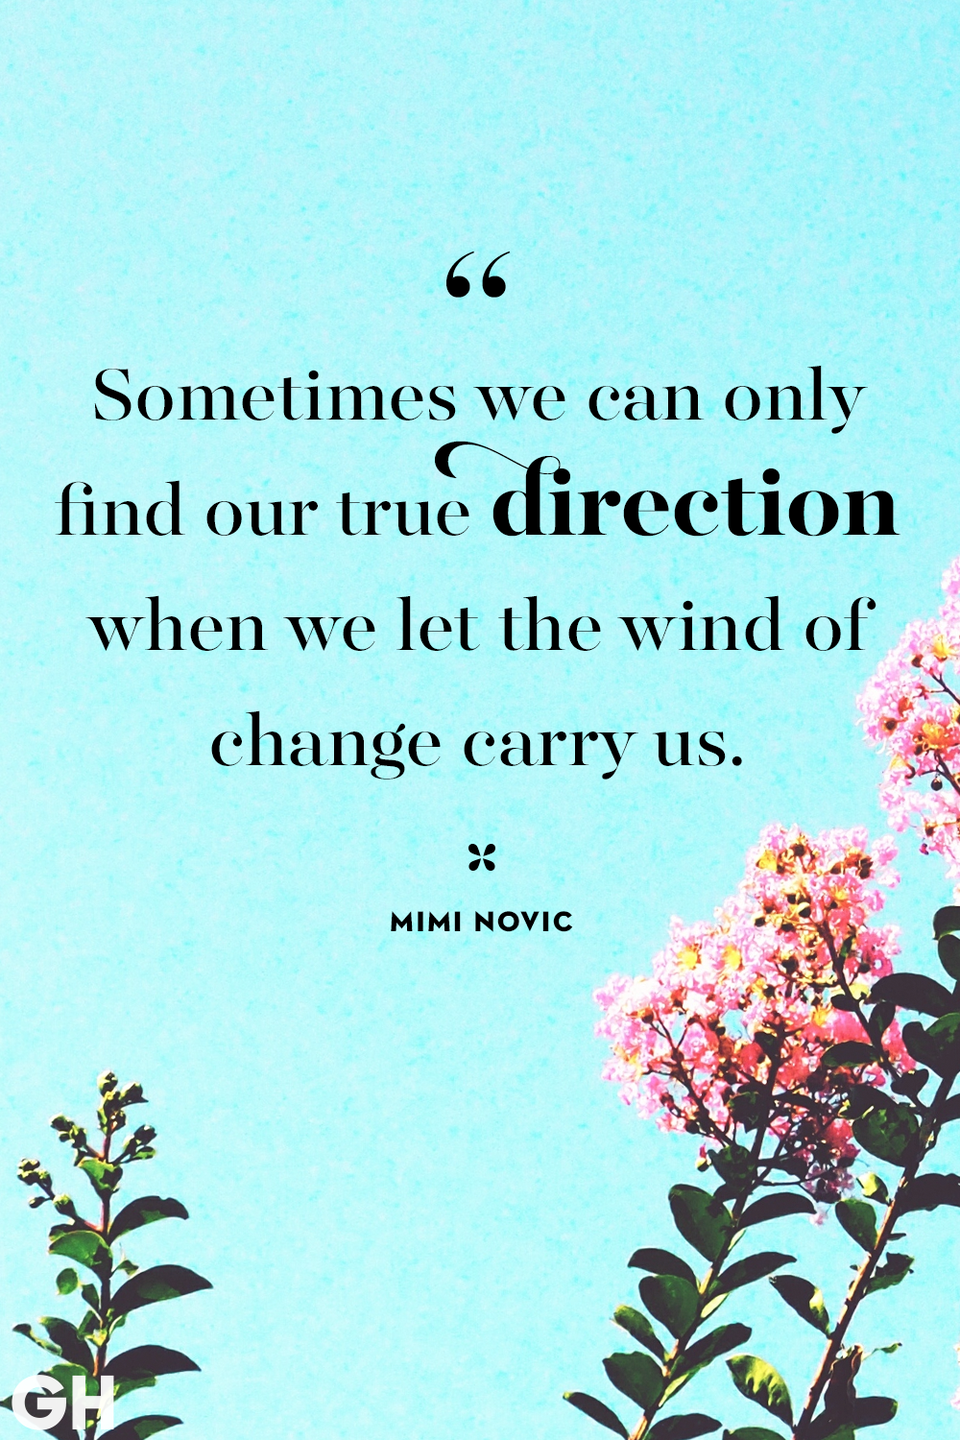 <p>Sometimes we can only find our true direction when we let the wind of change carry us.</p>